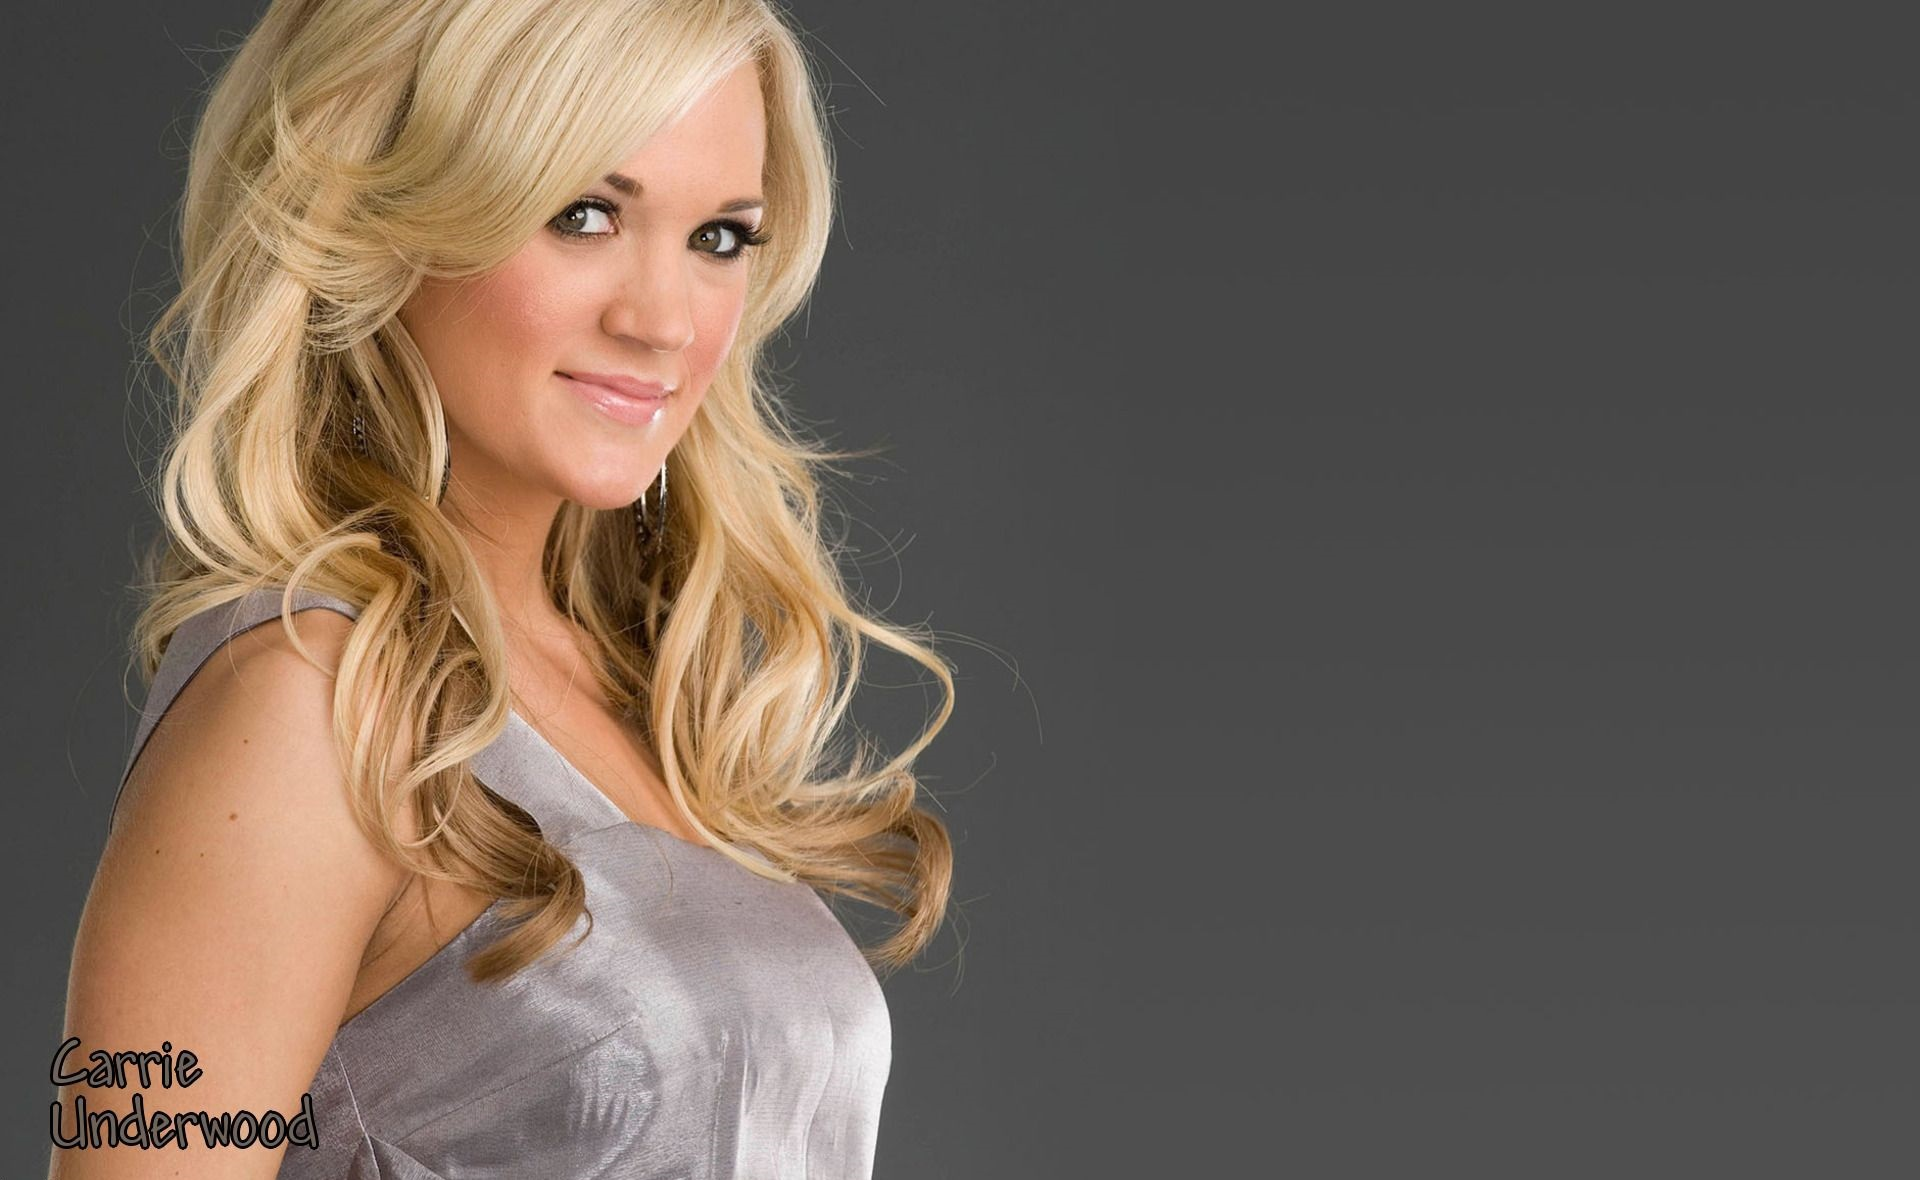 carrie underwood wallpapers images photos pictures backgrounds